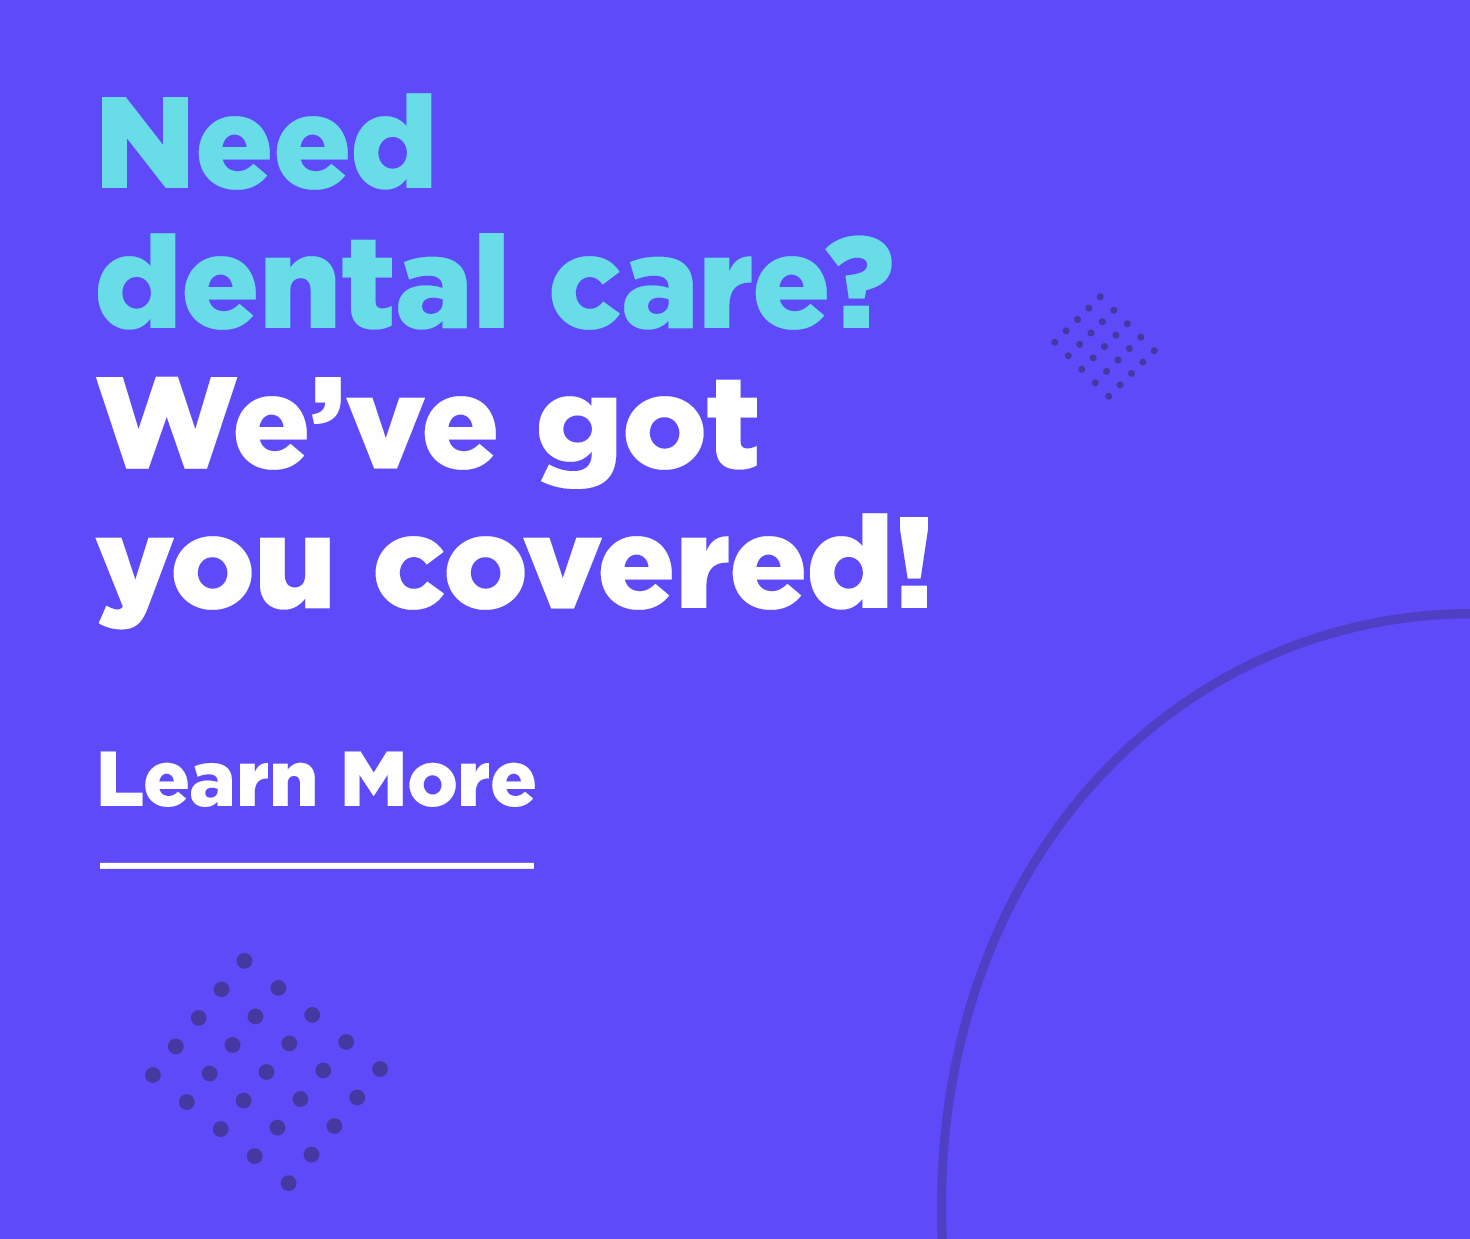 Need dental care? We've got you covered! Learn More. - Highlands Modern Dentistry and Orthodontics